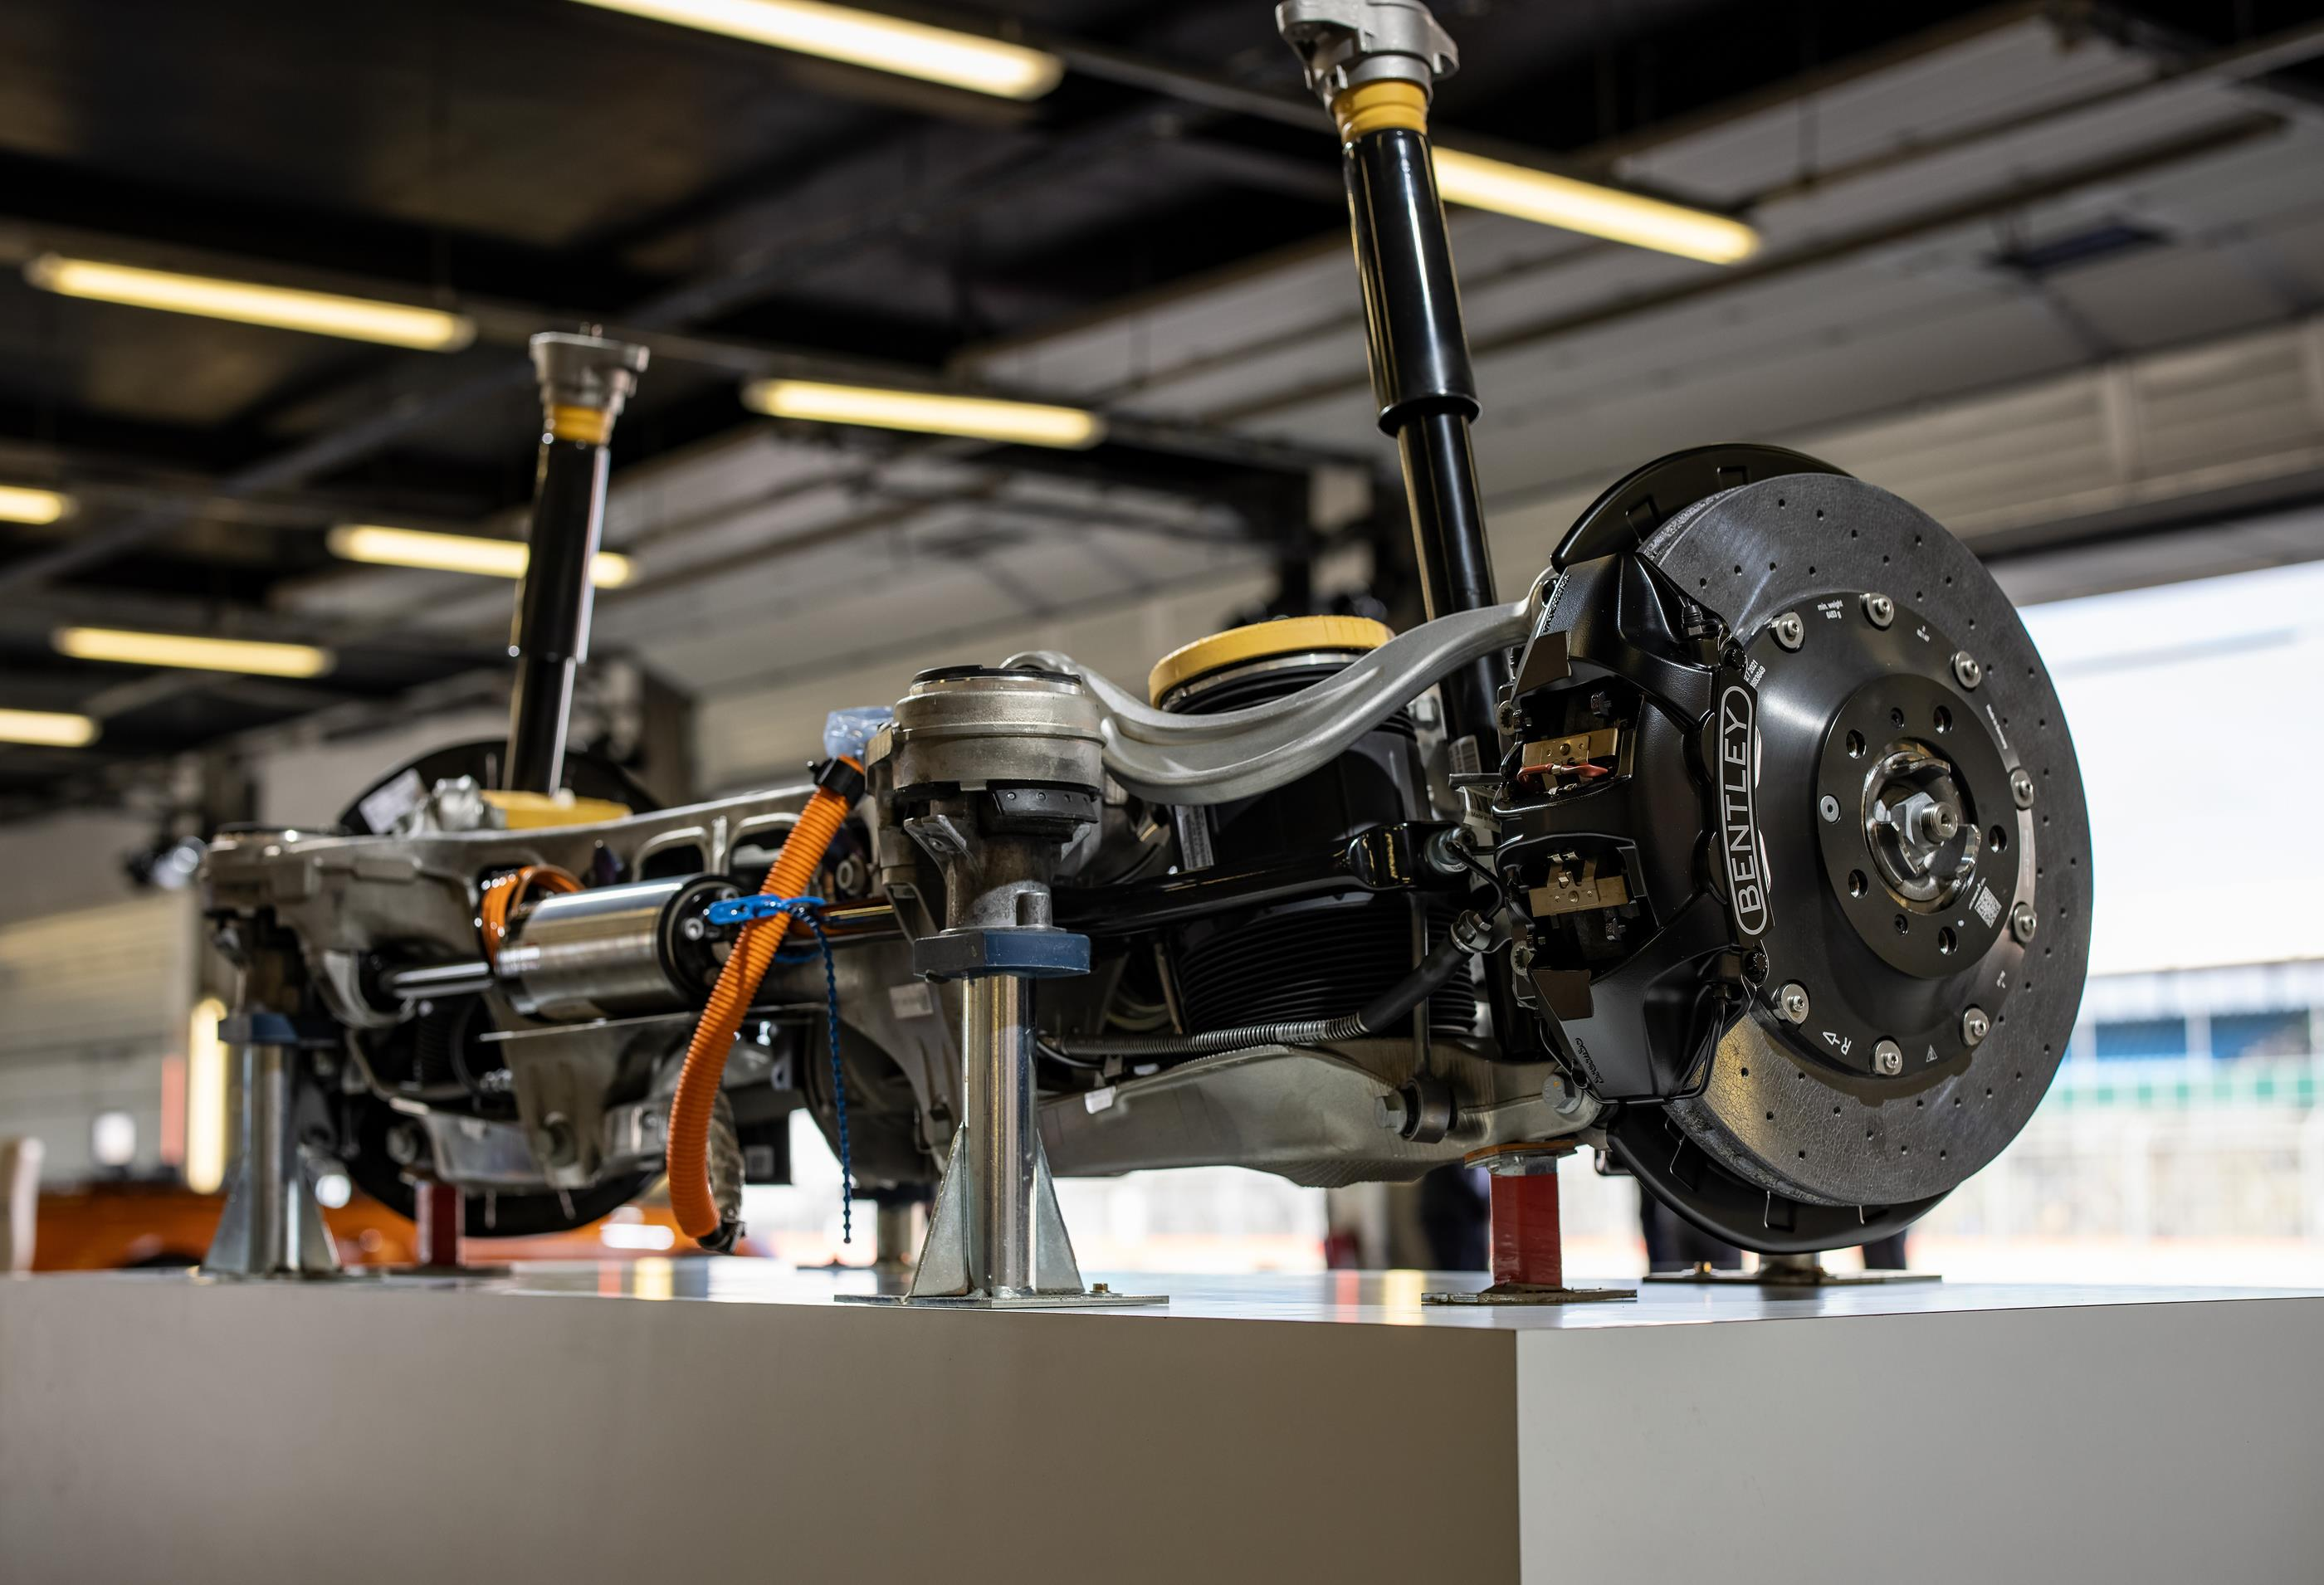 The Bentley Continental GT's rear axle